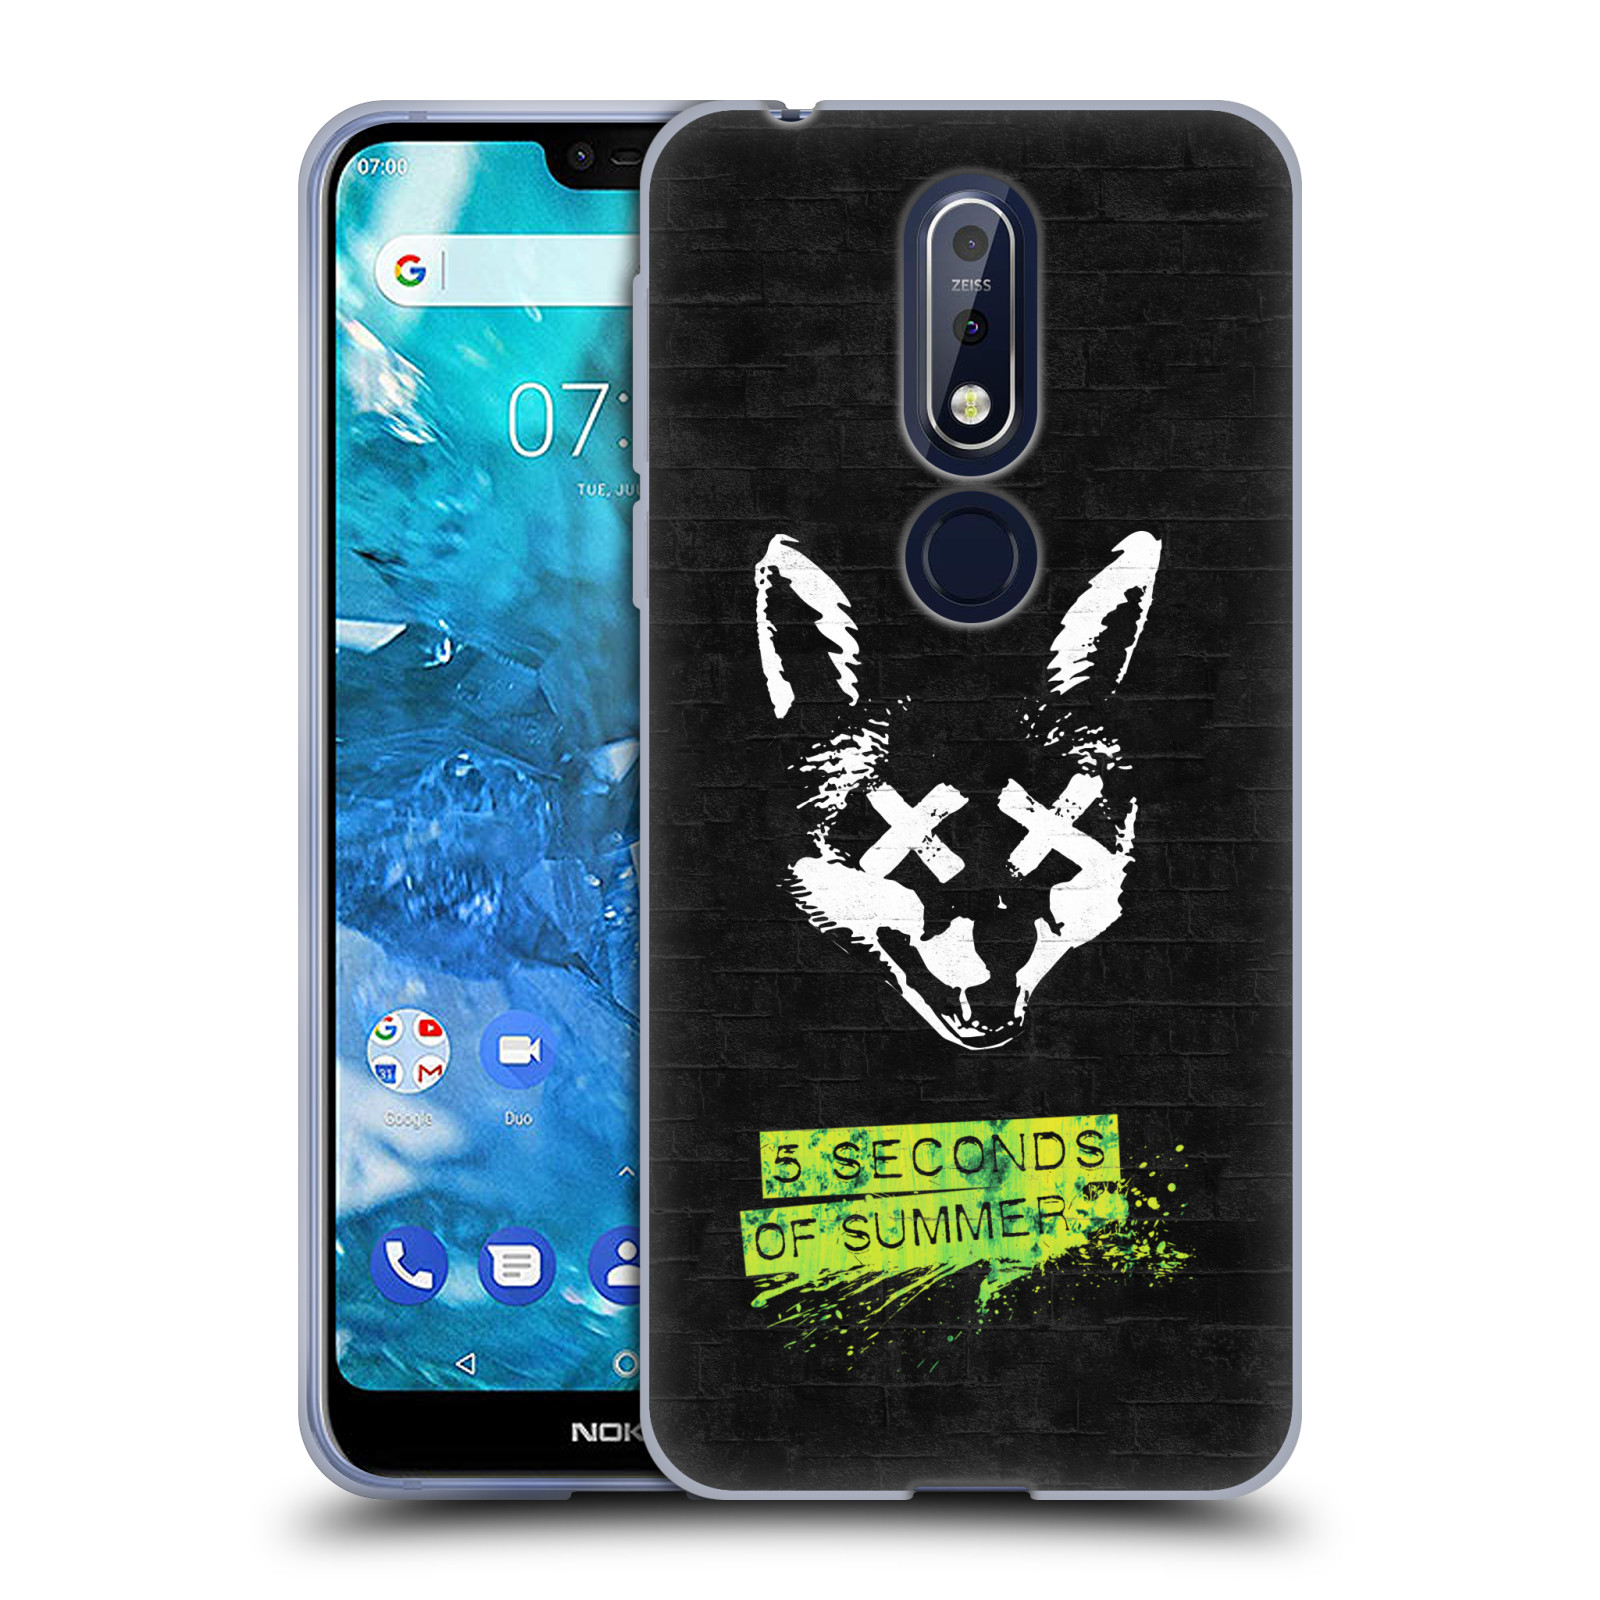 Silikonové pouzdro na mobil Nokia 7.1 - Head Case - 5 Seconds of Summer - Fox